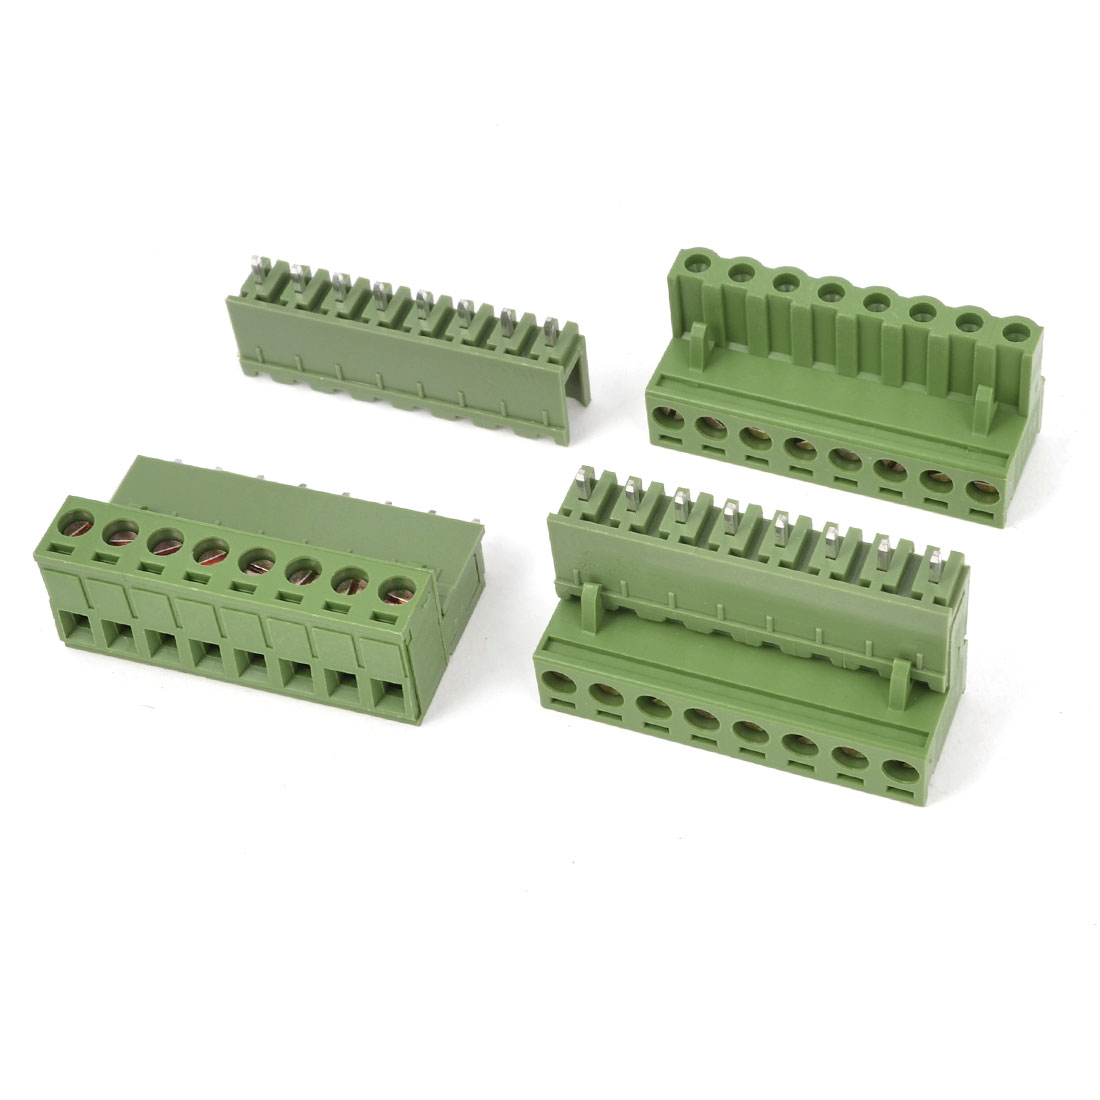 3 Pcs 300V 10A 8P Pins PCB Screw Terminal Block Connector 5.08mm Pitch Army Green